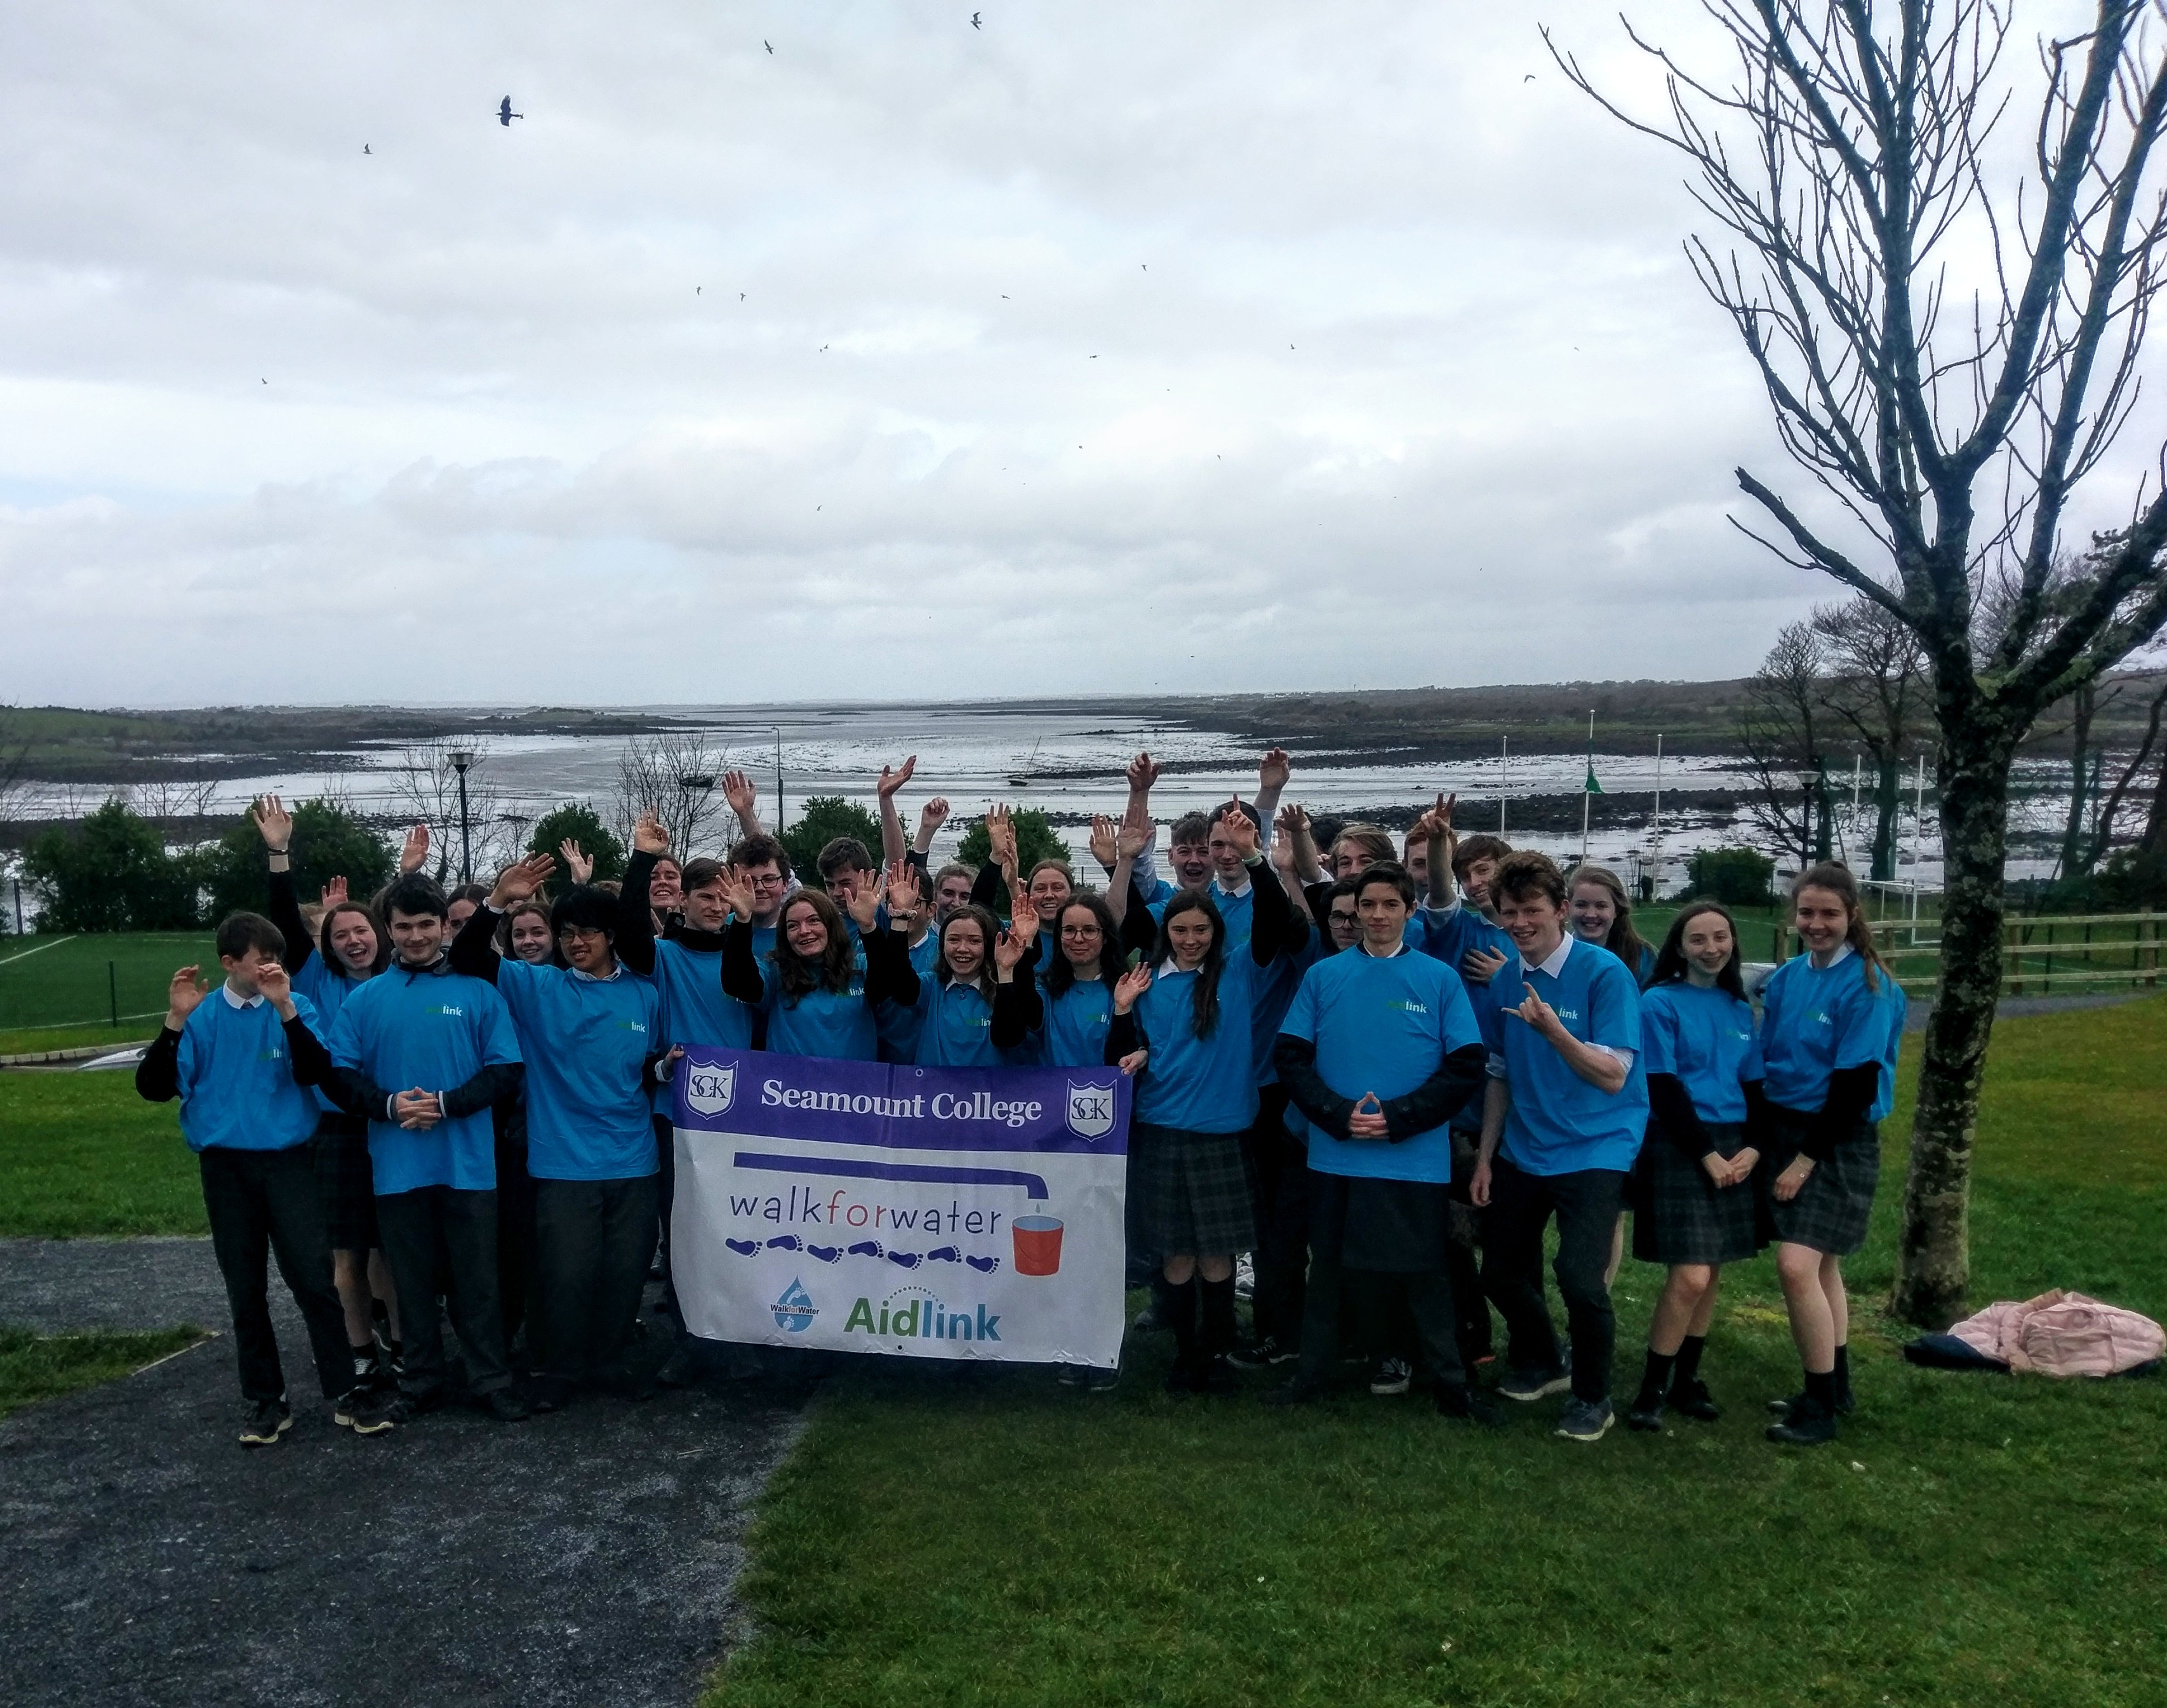 Walk For Water - Aidlink